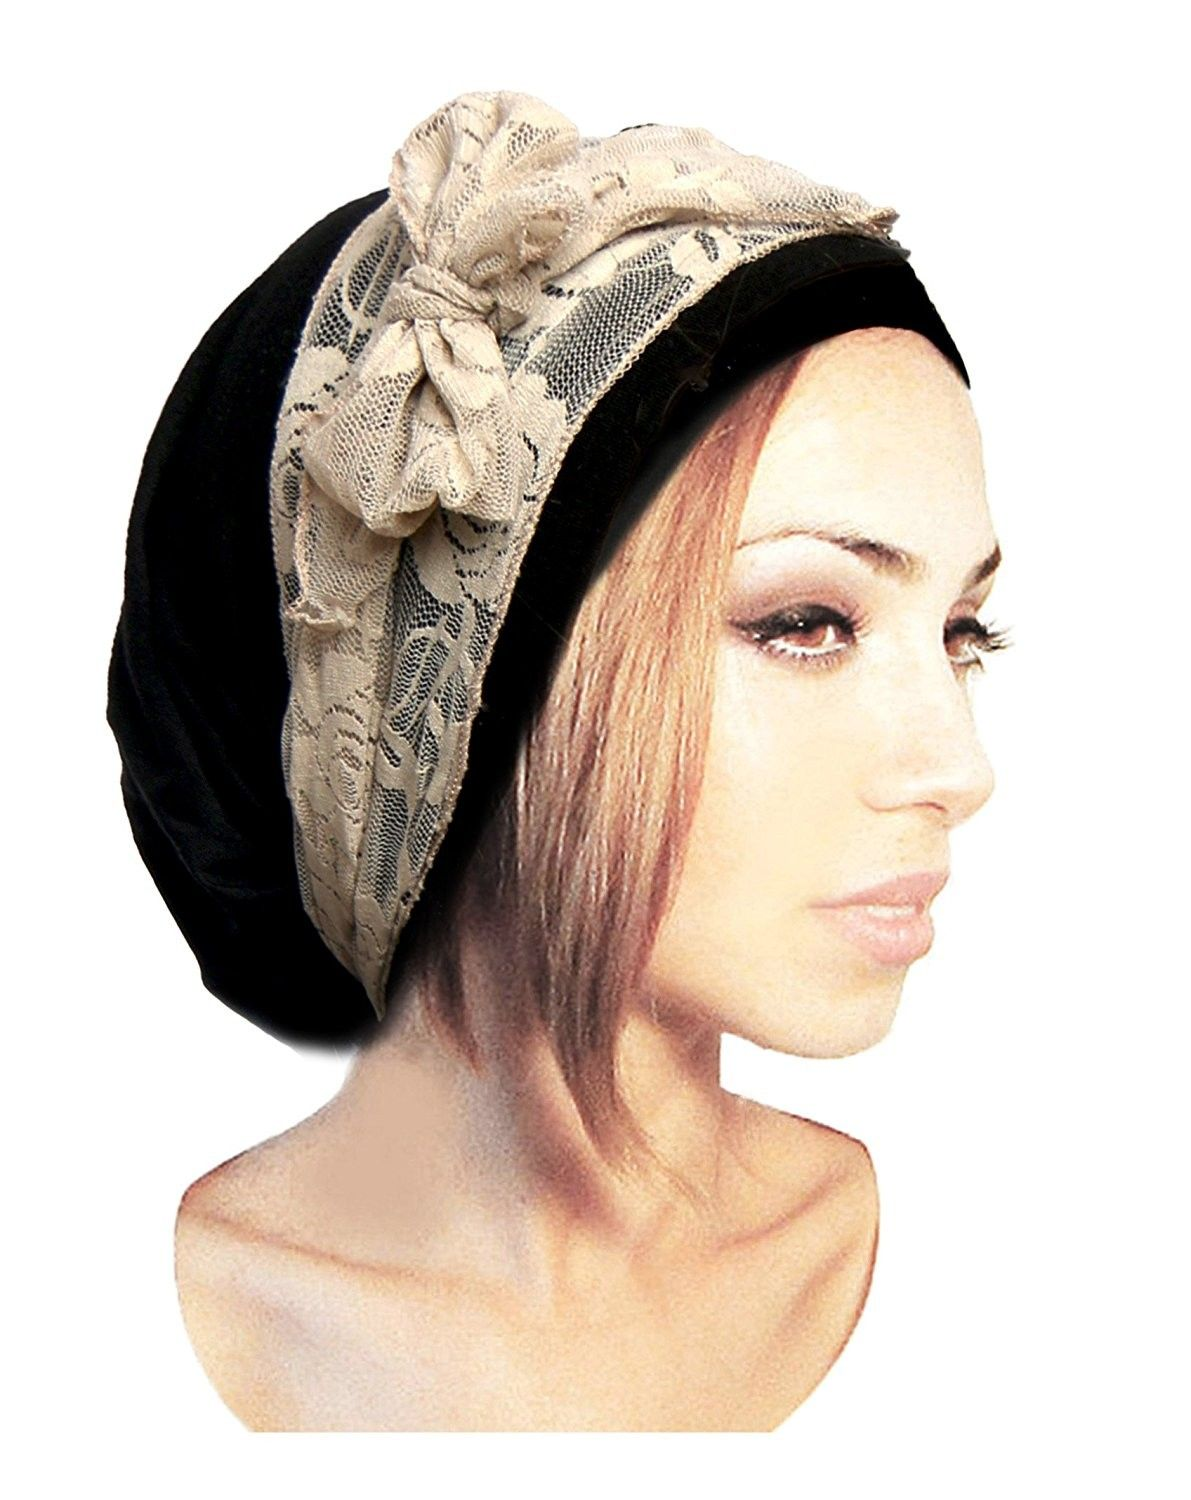 17abf6ad71184c Black Pre-Tied Head Scarf Boho Chic Bandana Tichel Vintage Cream Lace Wrap  - 076 - CJ11XKXNKSF - Hats & Caps, Women's Hats & Caps, Headbands  #womenscaps ...